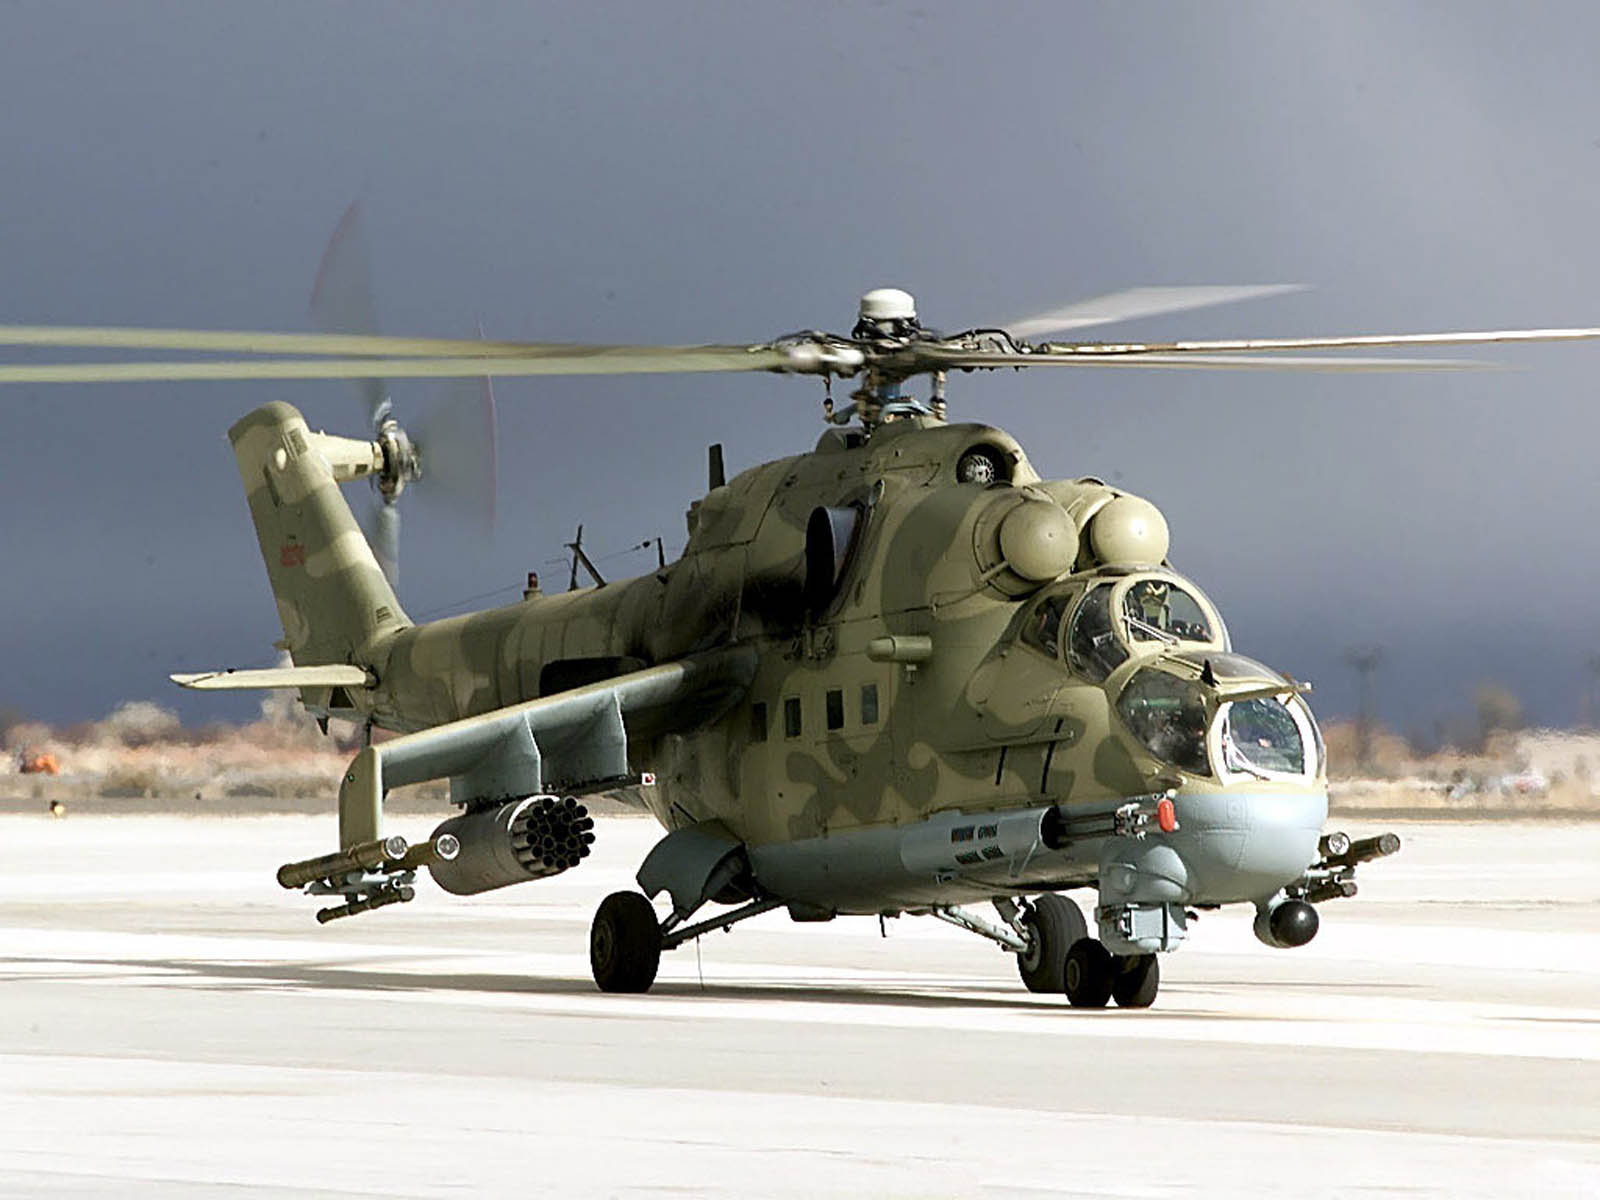 wallpapers military helicopter wallpapers. Black Bedroom Furniture Sets. Home Design Ideas